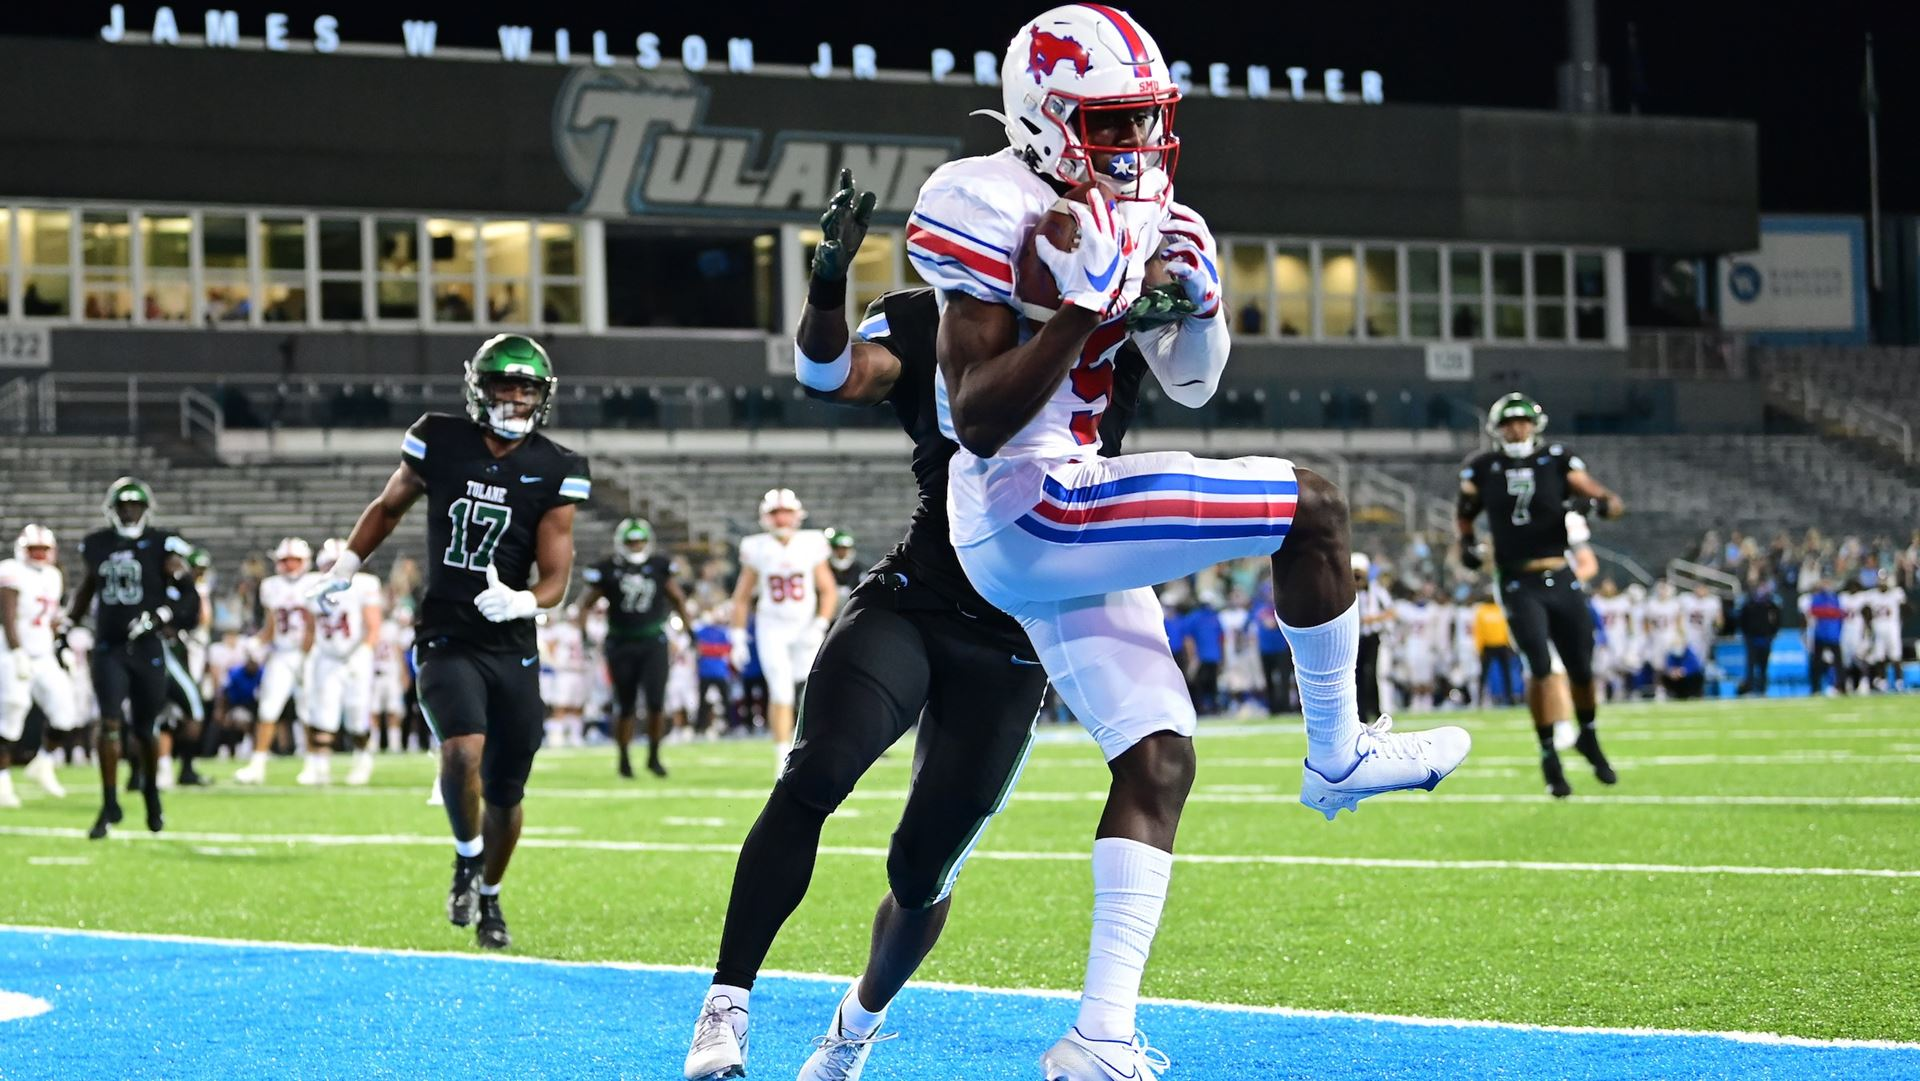 SMU Mustangs wide receiver Danny Gray makes a reception against the Tulane Green Wave